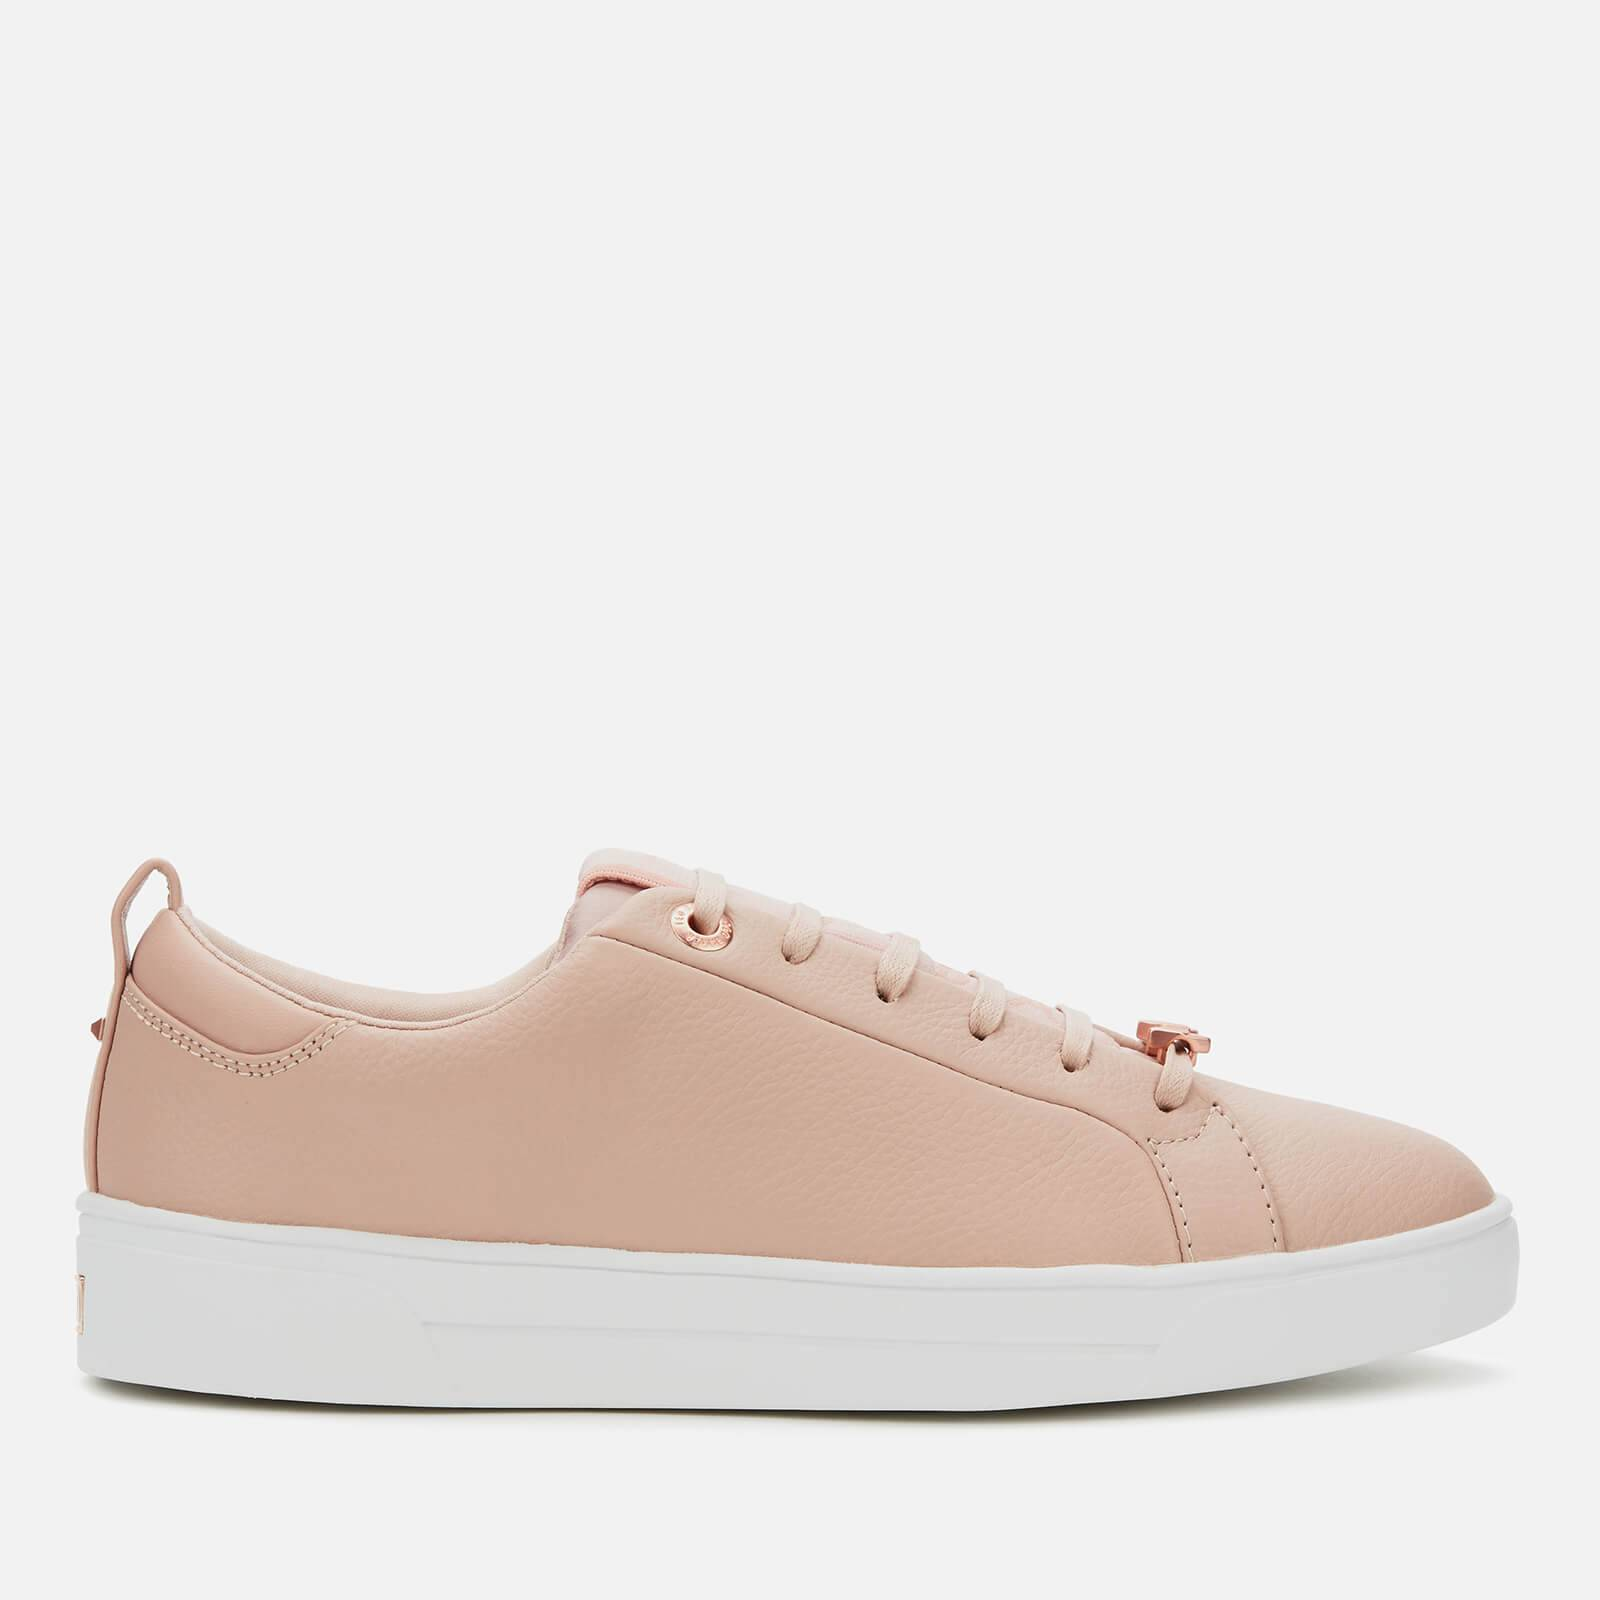 Ted Baker Women's Tedah Branded Leather Trainers - Pink - UK 4